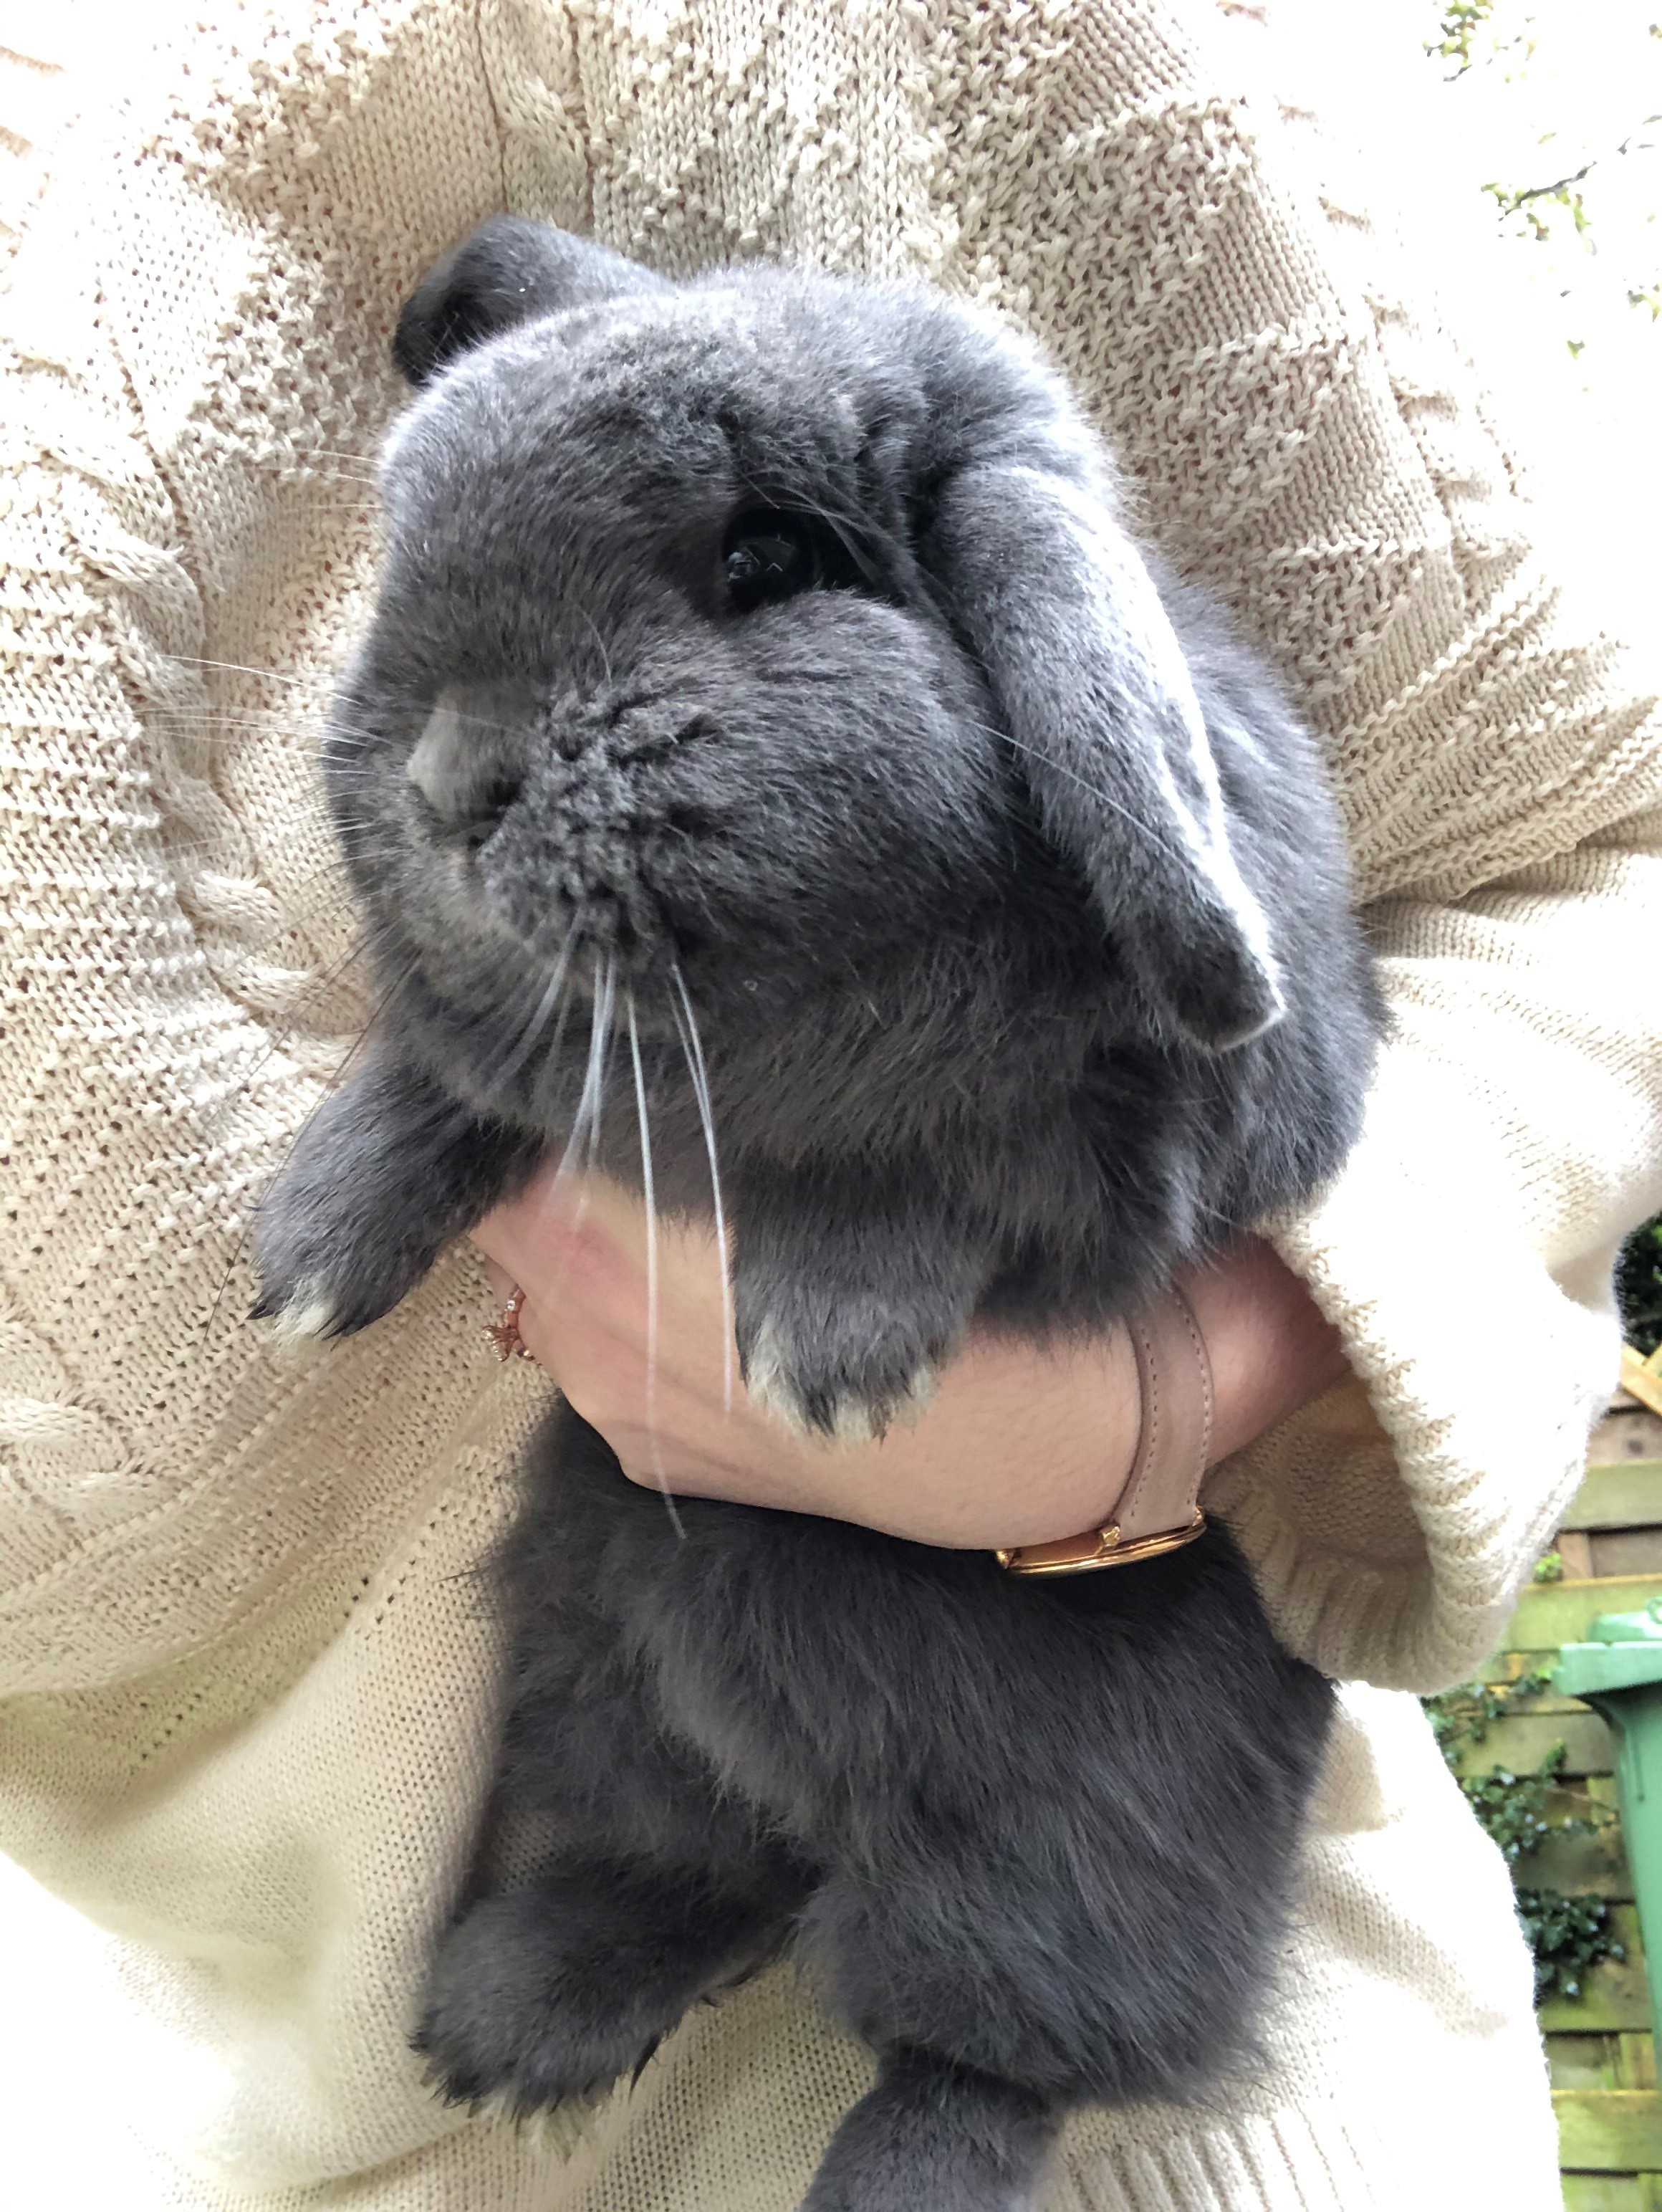 Shipping rabbits to Europe from the US